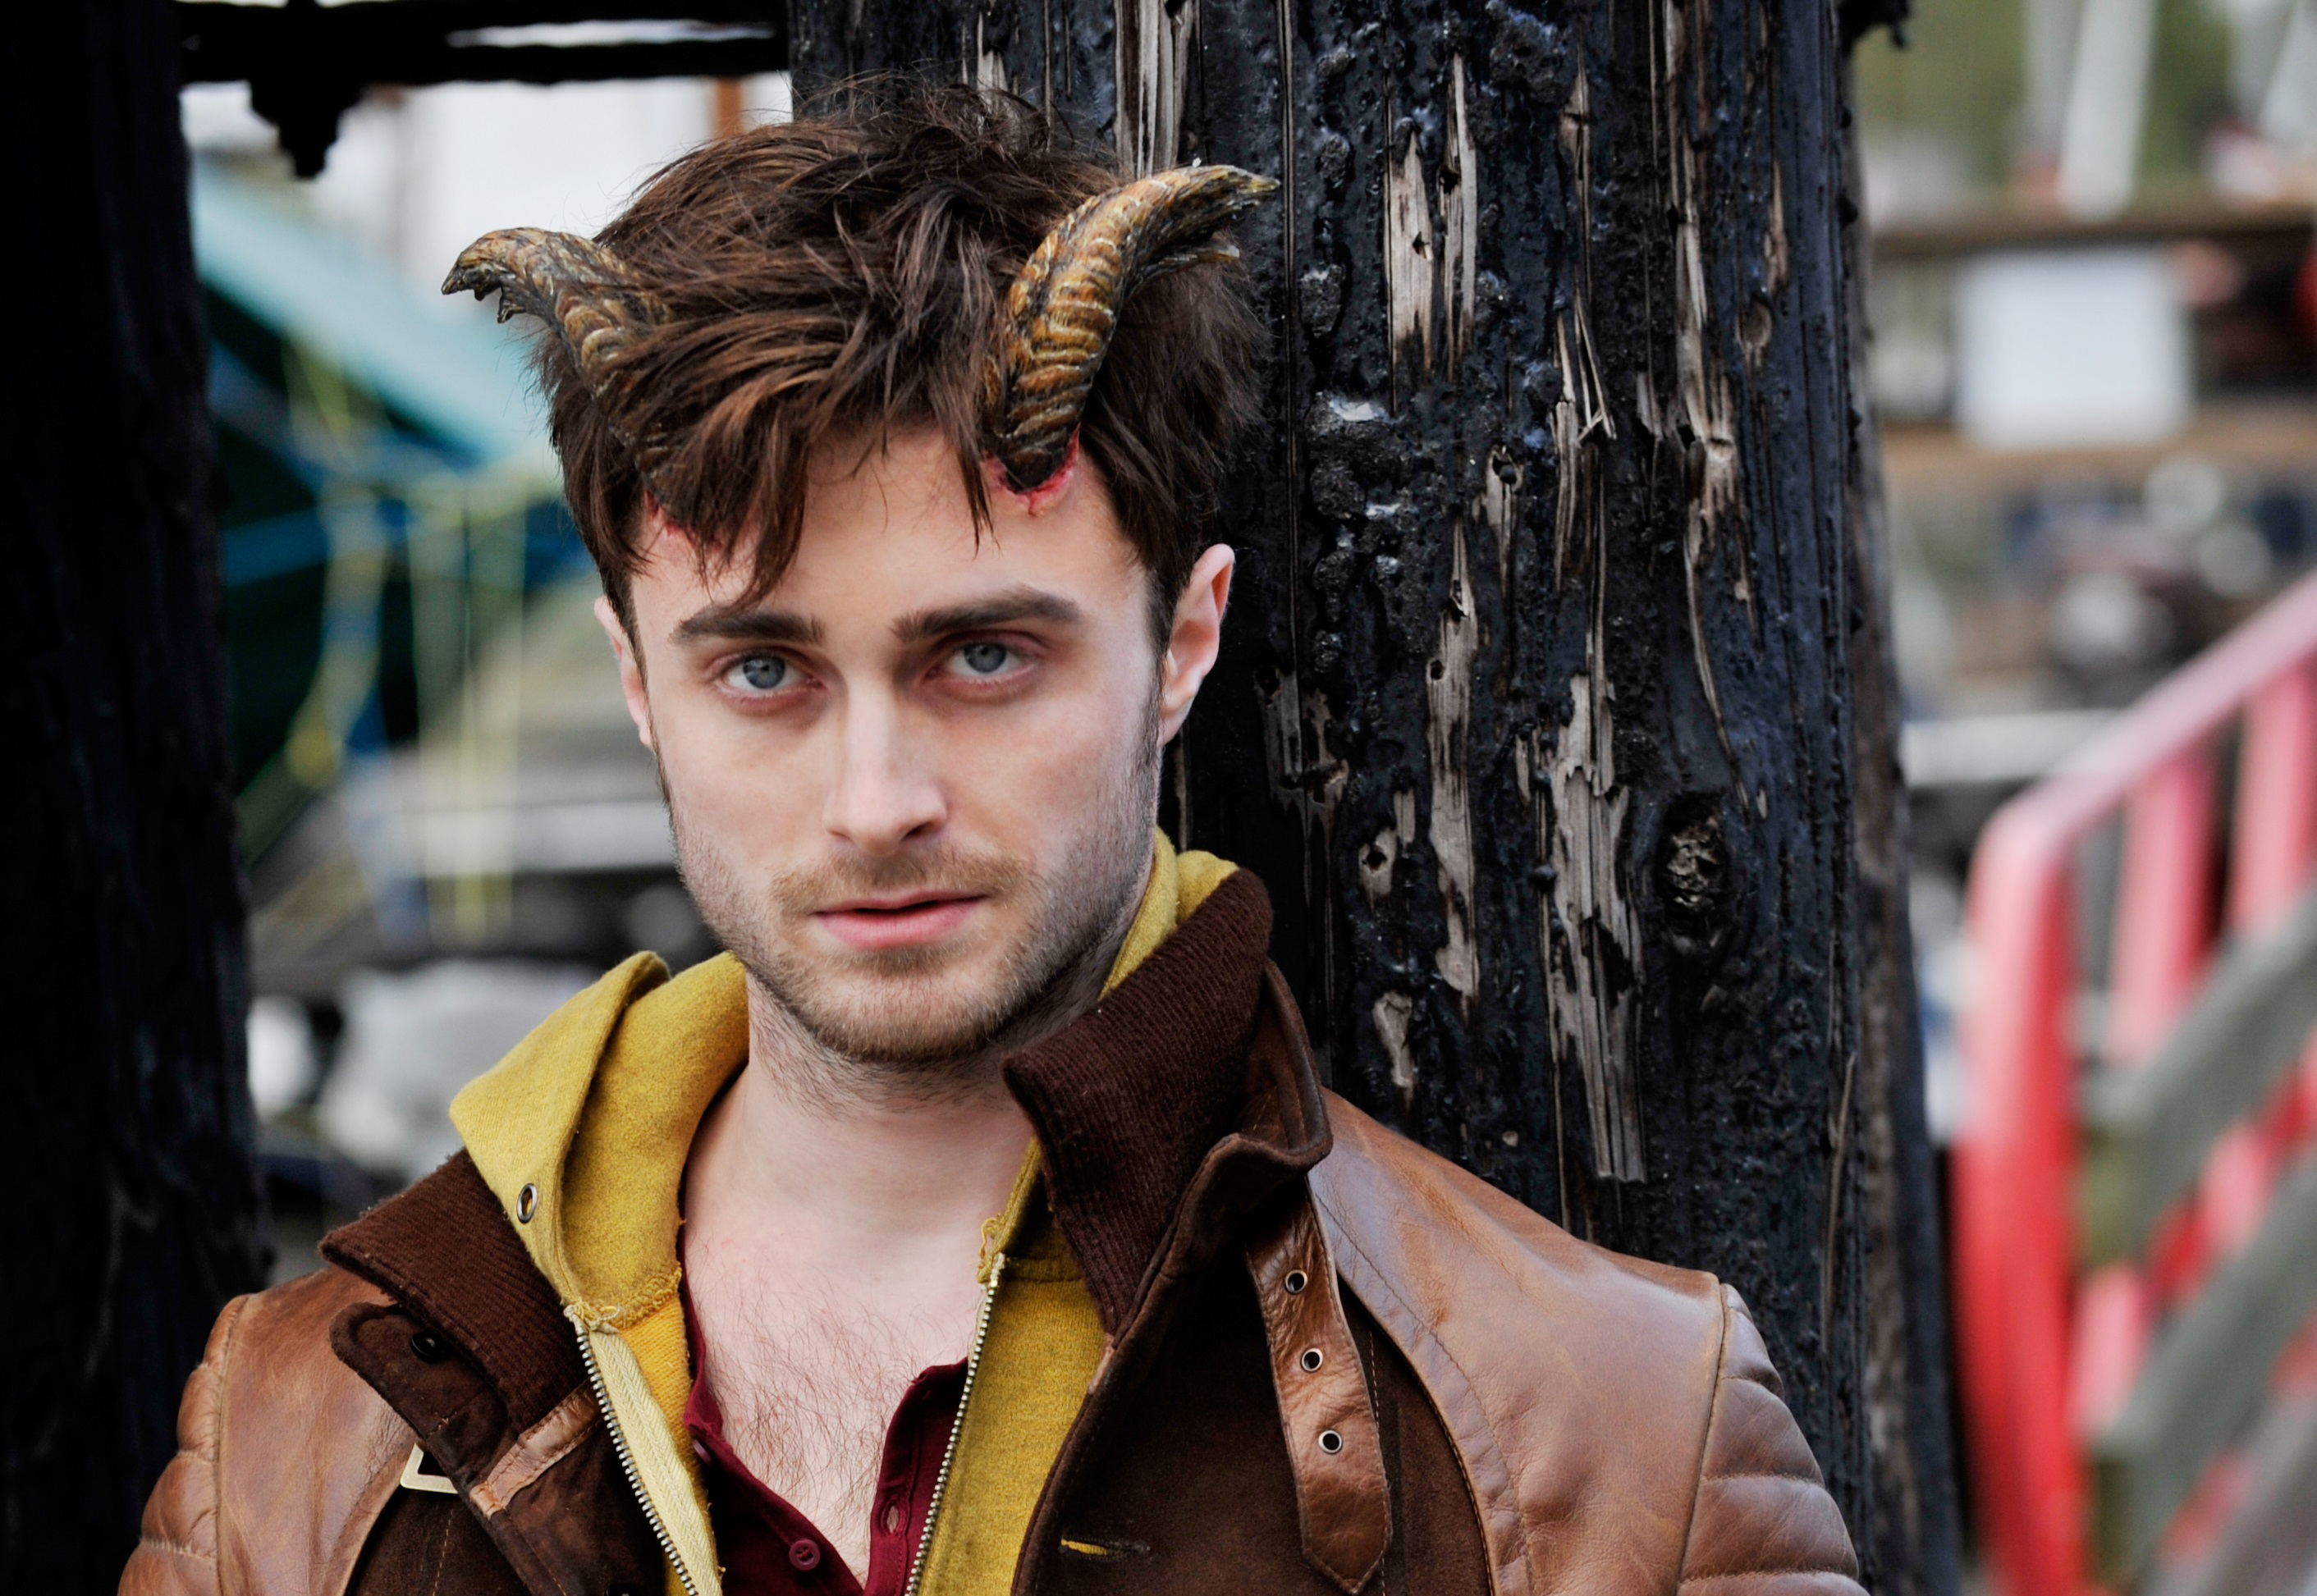 Horns of a dilemma: In 'Horns,' Daniel Radcliffe plays Ig Perrish, a young man who wakes up one day with horns growing out of his head. This new feature coincides with the ability to get those around him to confess their darkest secrets.   © 2014 The Horns Project, Inc. All Rights Reserved